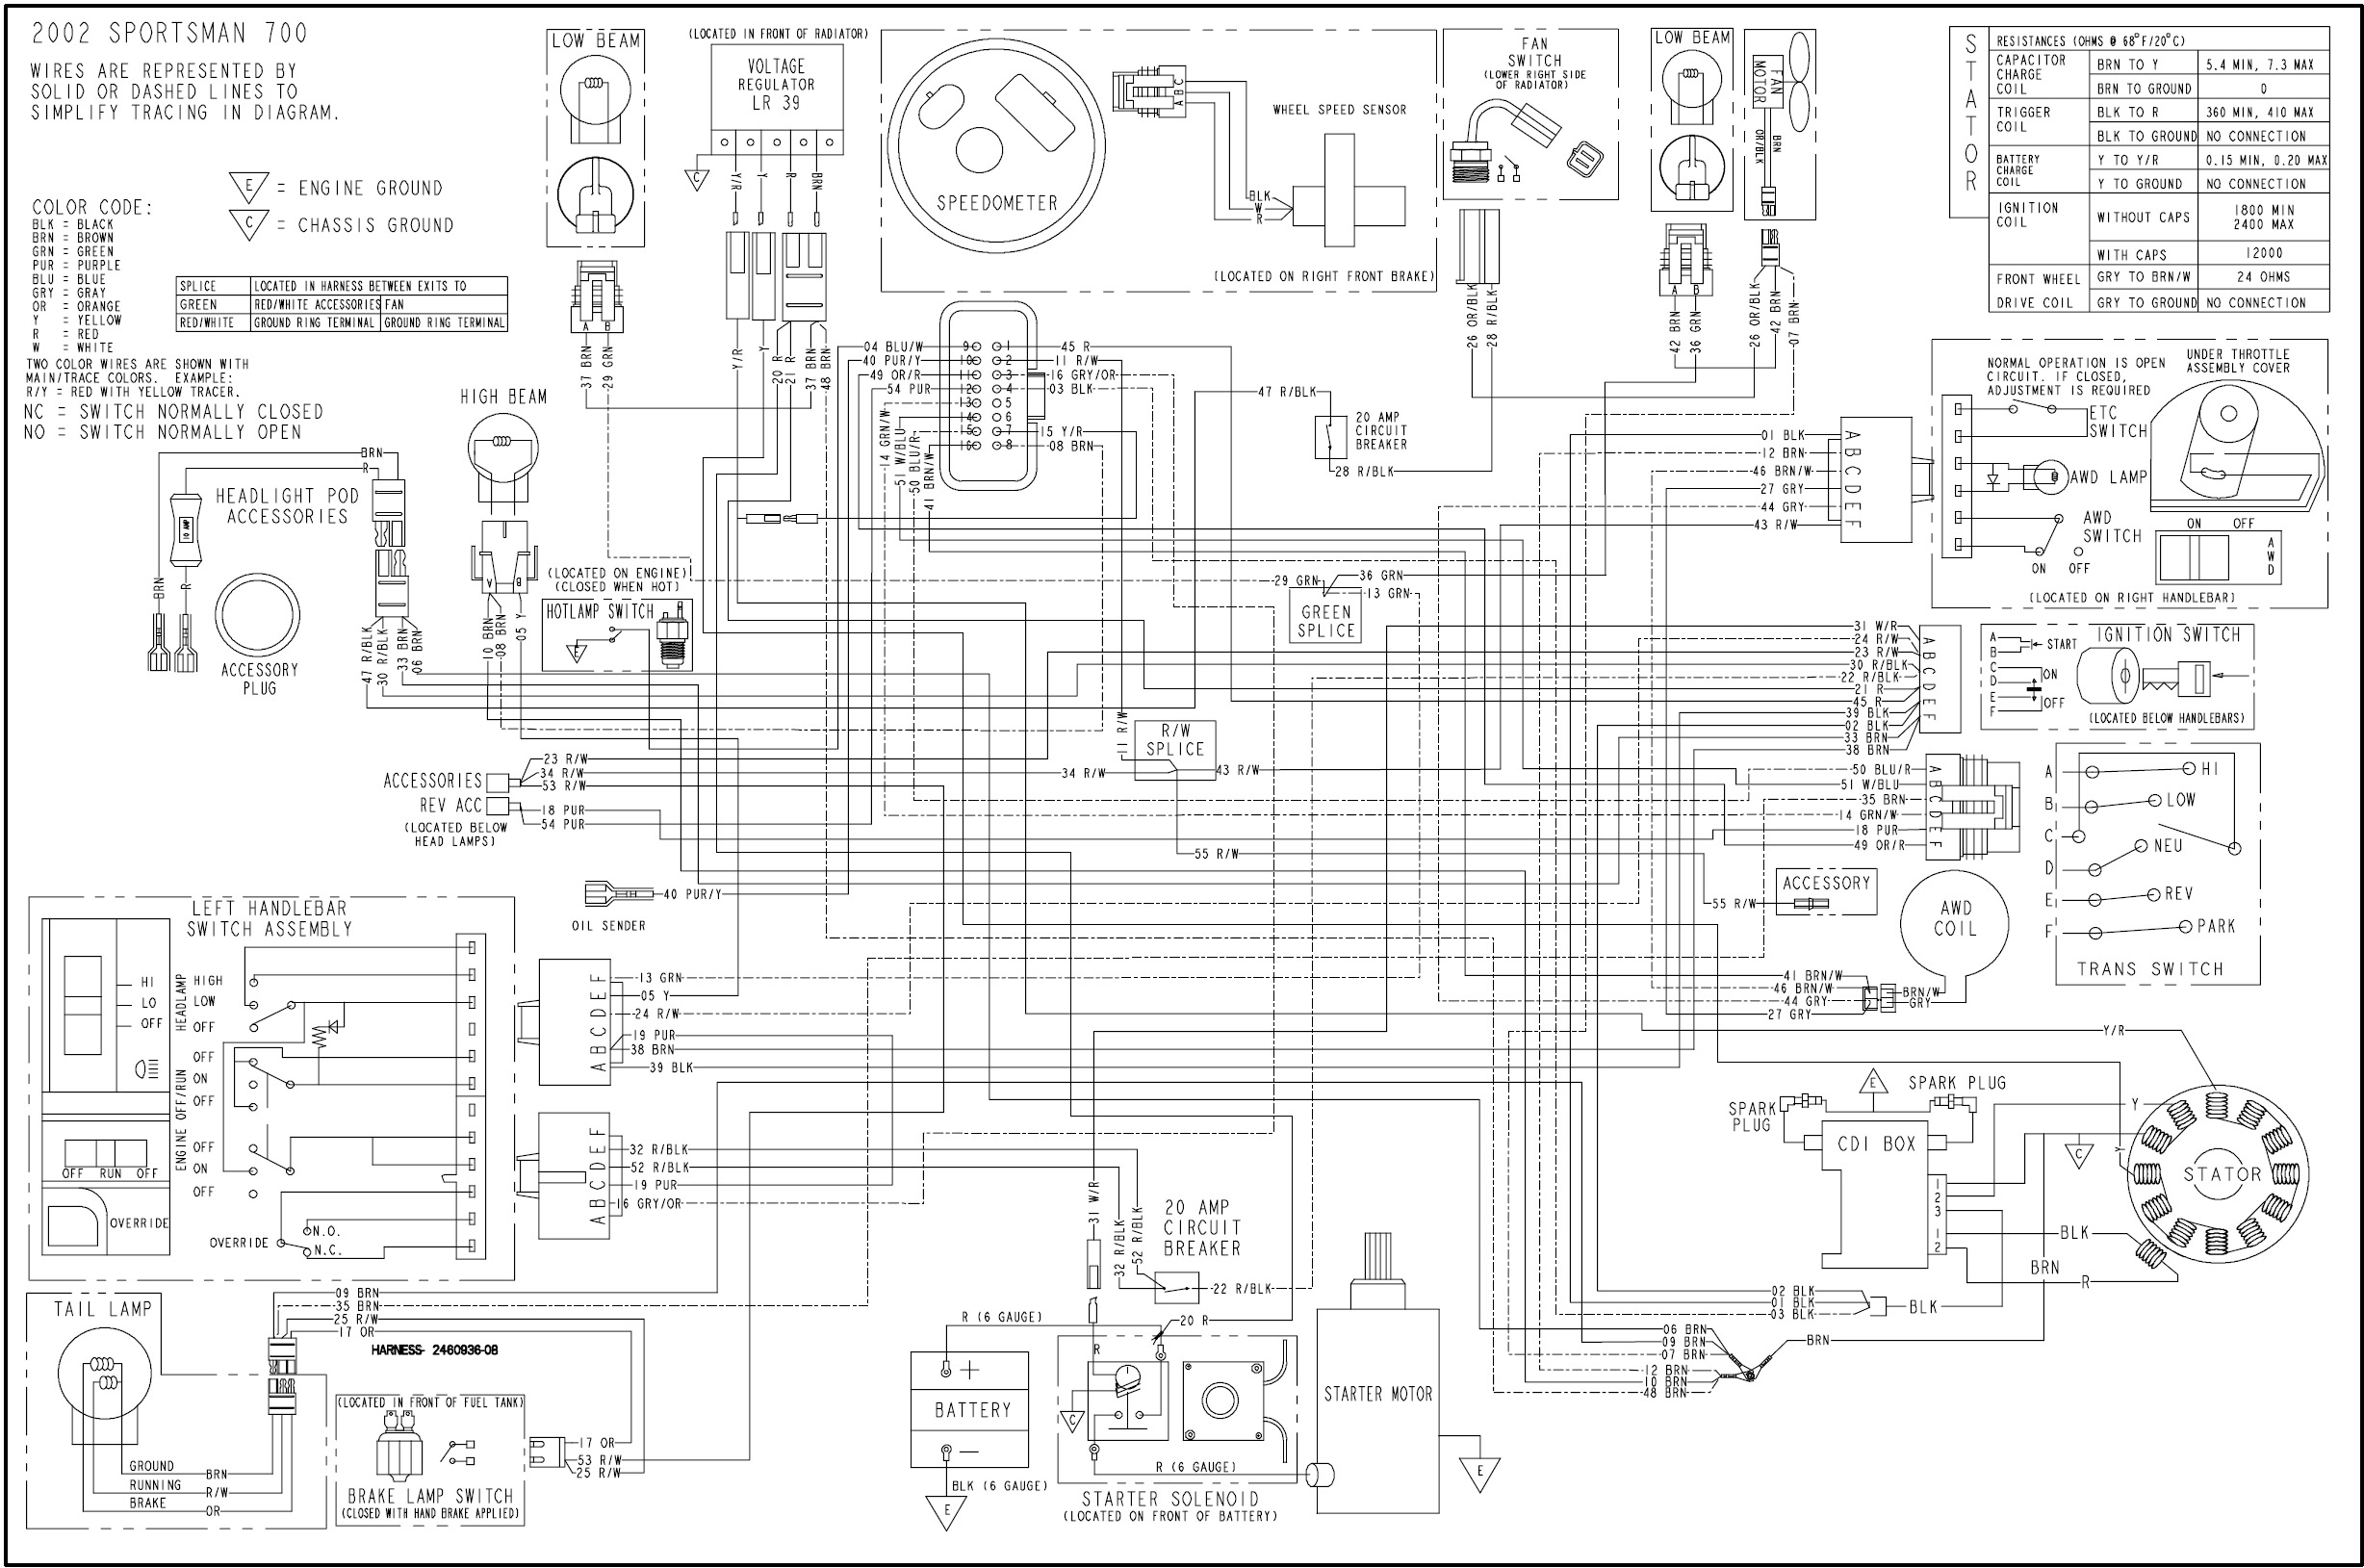 75754d1491234477 2001 sportsman 700 twin no start 2002_polaris_sportsman_700_wiring_diagram polaris wire harness drlete,wire \u2022 j squared co 2001 Polaris Sportsman 90 Wiring Diagram at bakdesigns.co